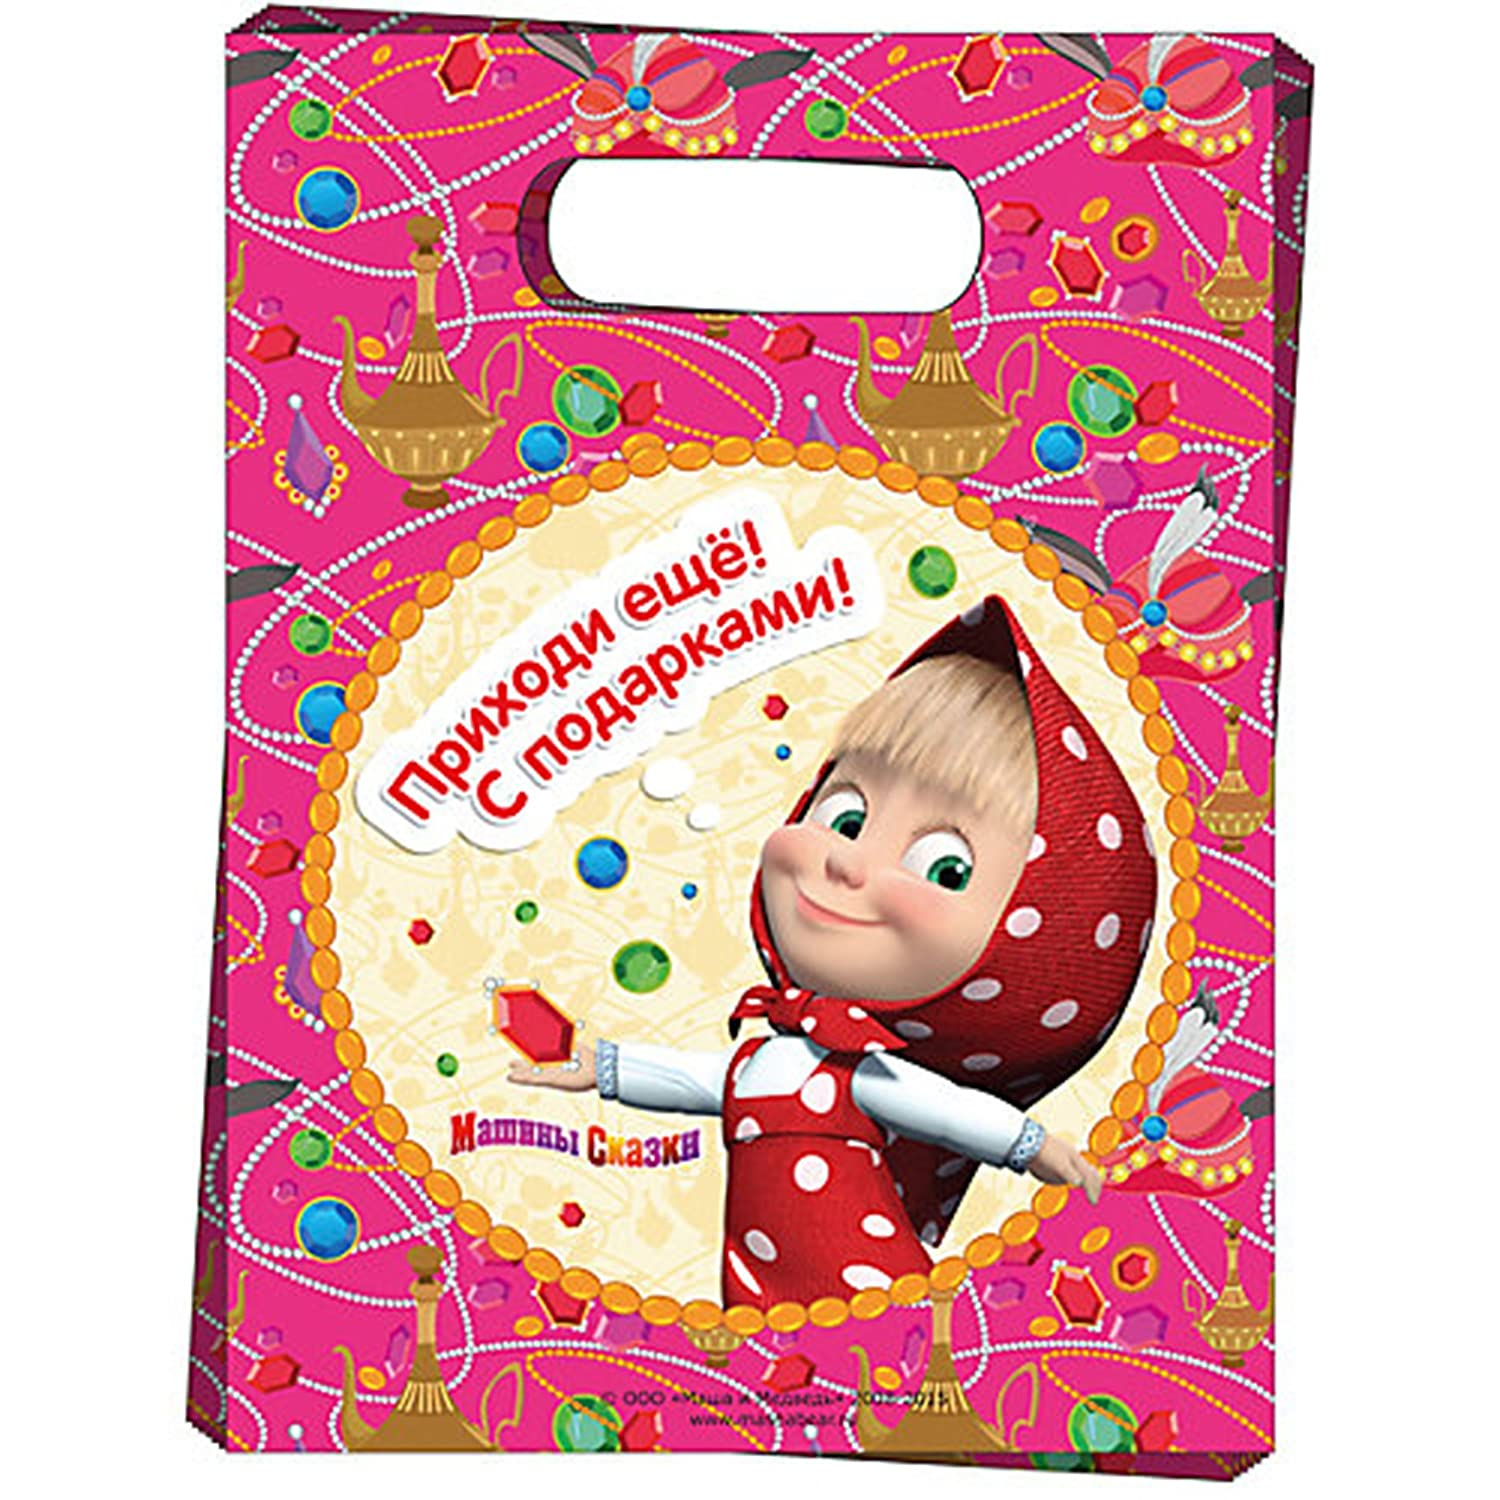 party favor Figurine birthday Rosman 6.7x9inch surprise baby 6 pcs holiday package bag Masha and the Bear for a holiday party party favor birthday cupcake toppers childrens holiday